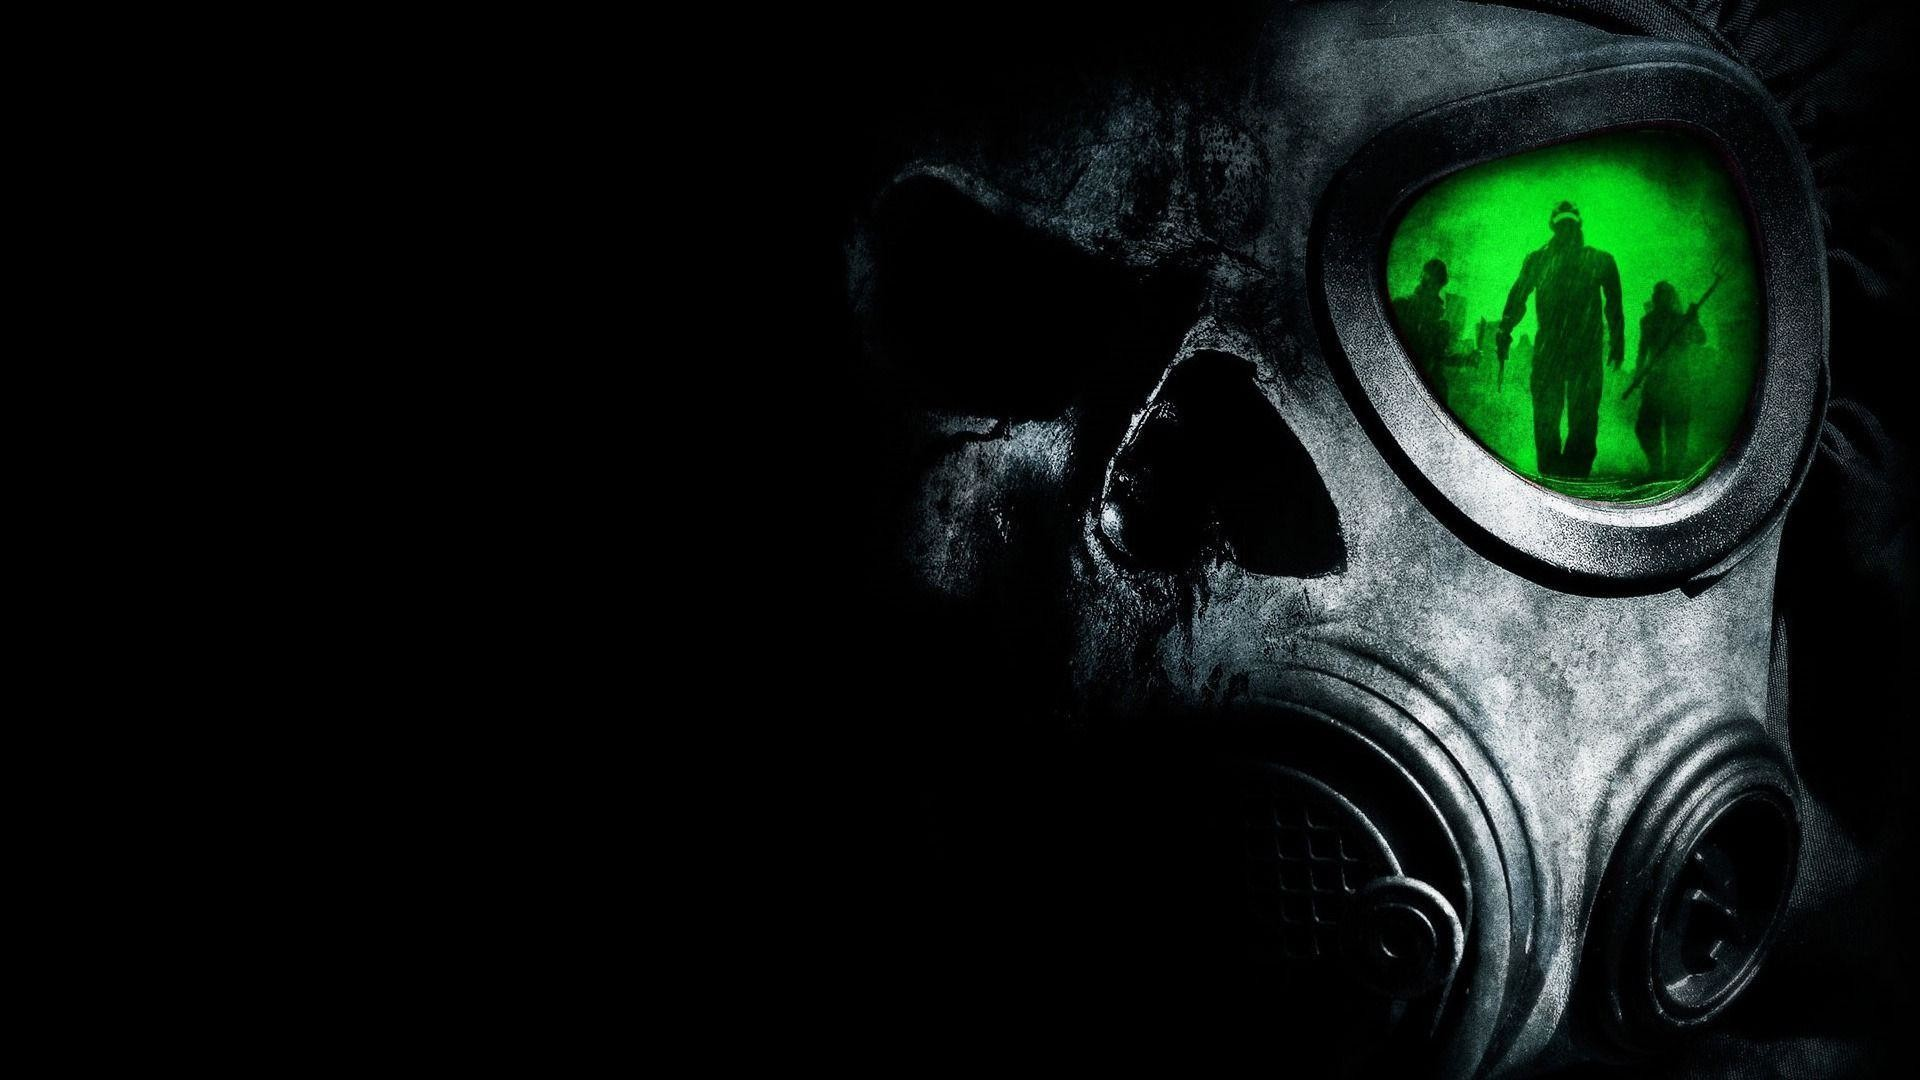 Download Free Hd Horror Wallpapers: HD Scary Wallpapers (63+ Images